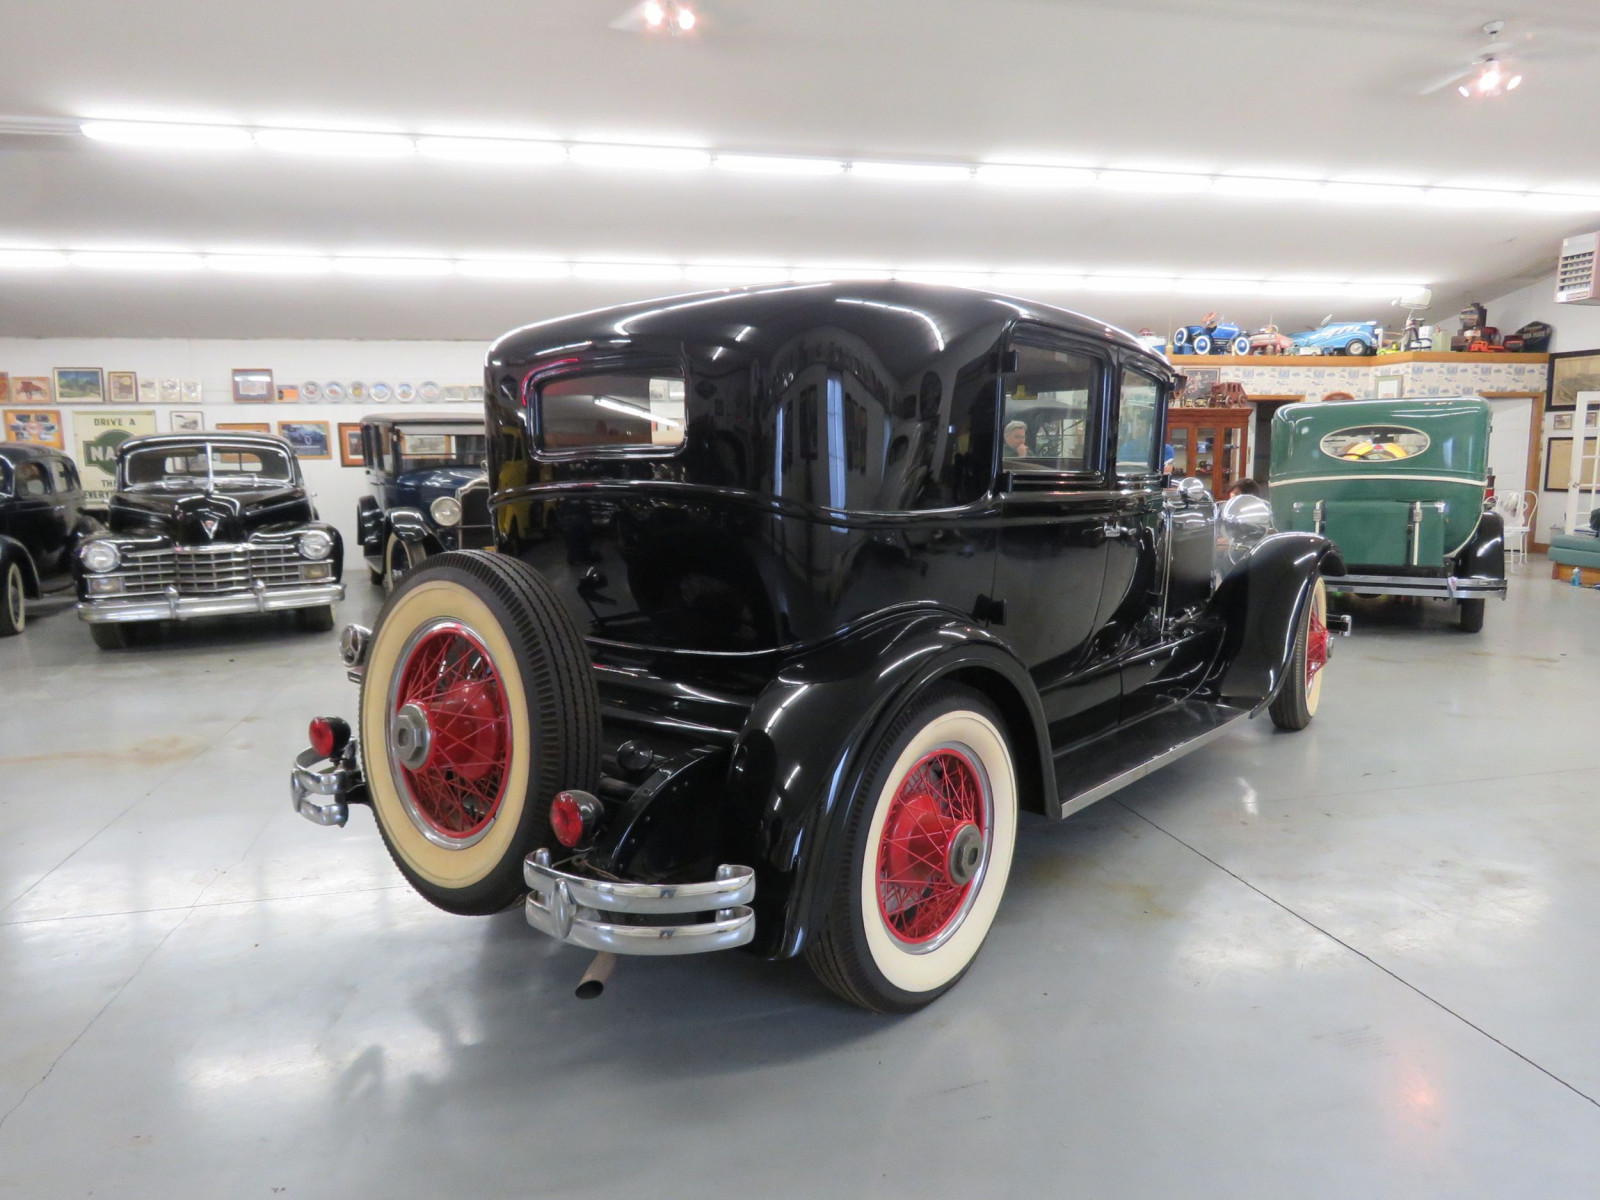 1929 Lincoln Model L 4dr Sedan - Image 6